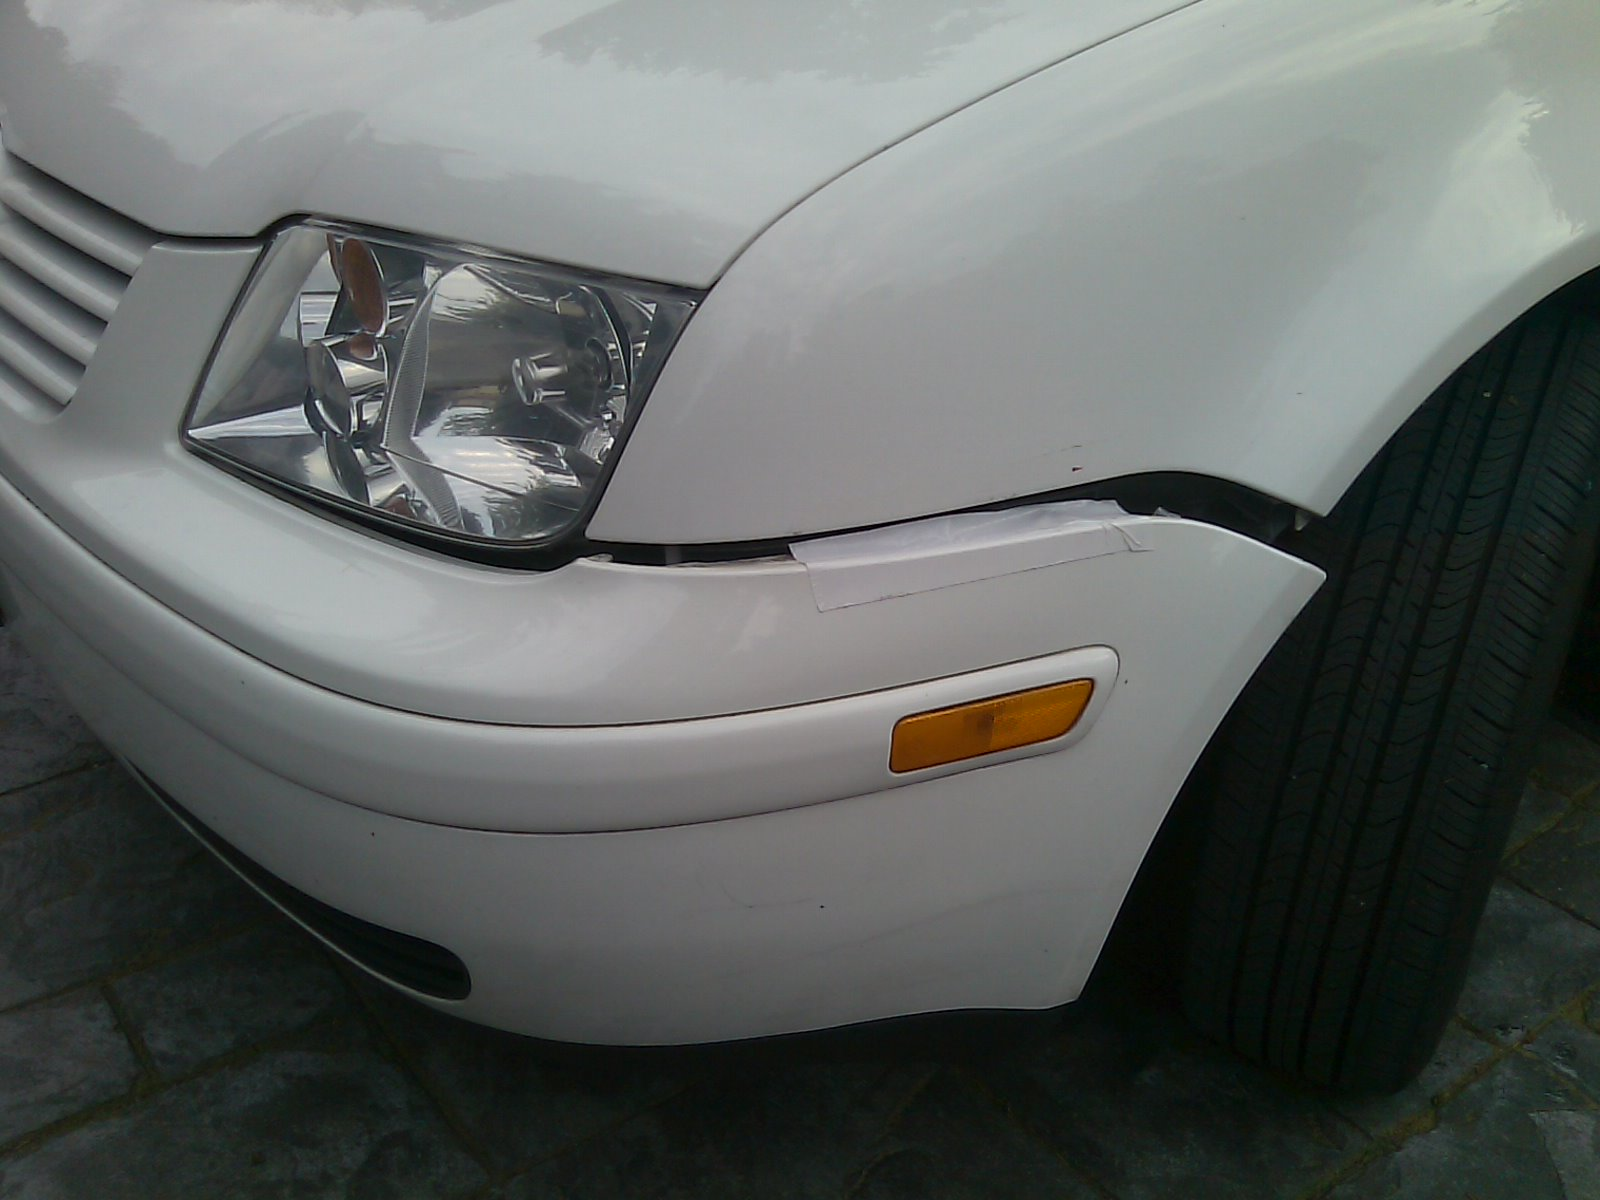 Black Gorilla Tape To Fix Car Dents And Dings